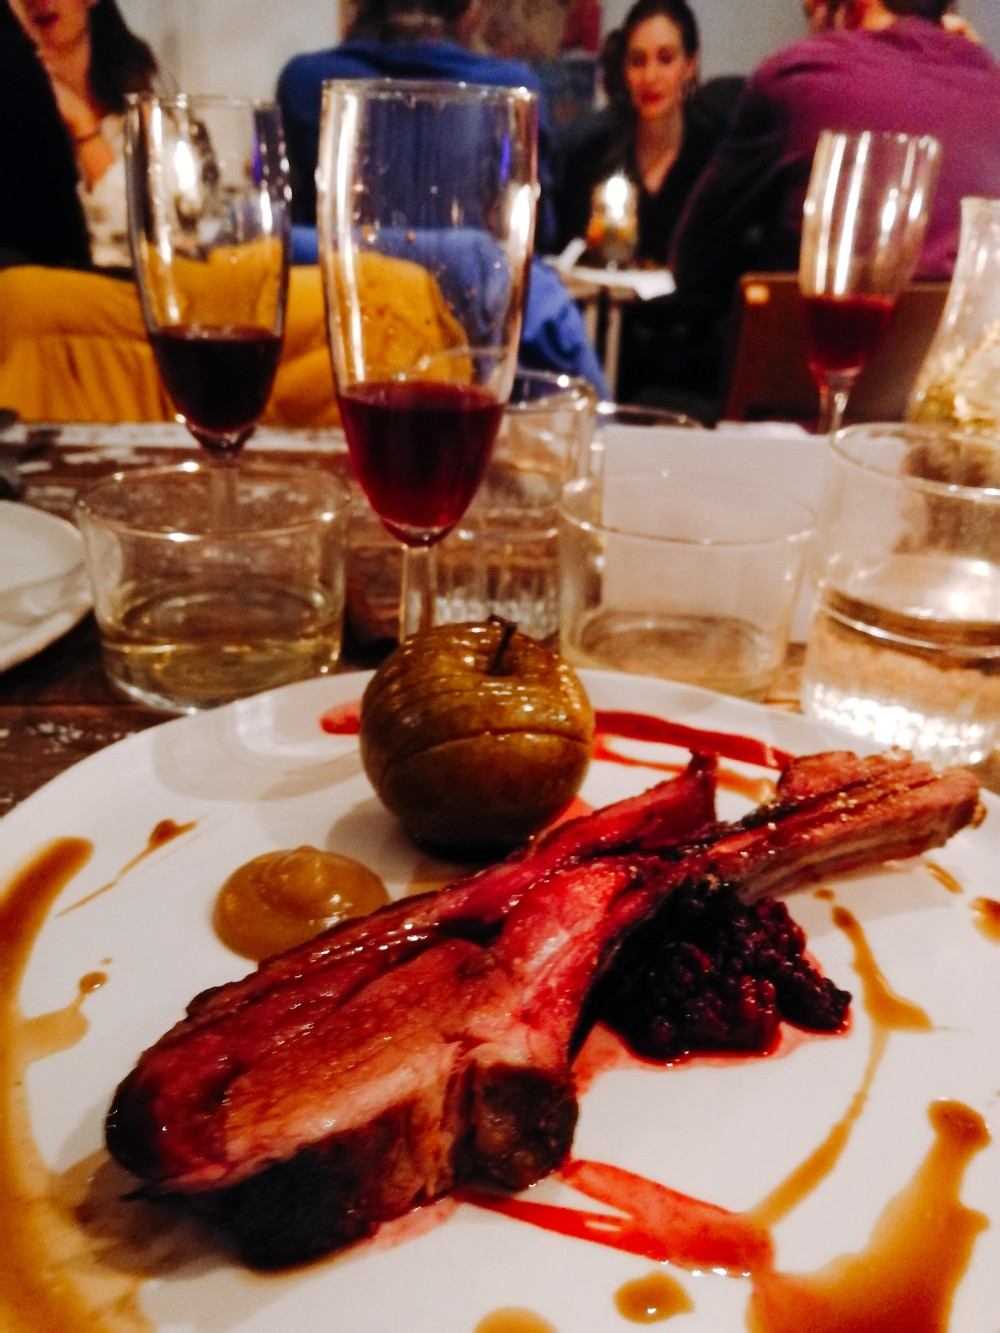 Wild Boar with russet apple. Blackberry vermouth shown in background